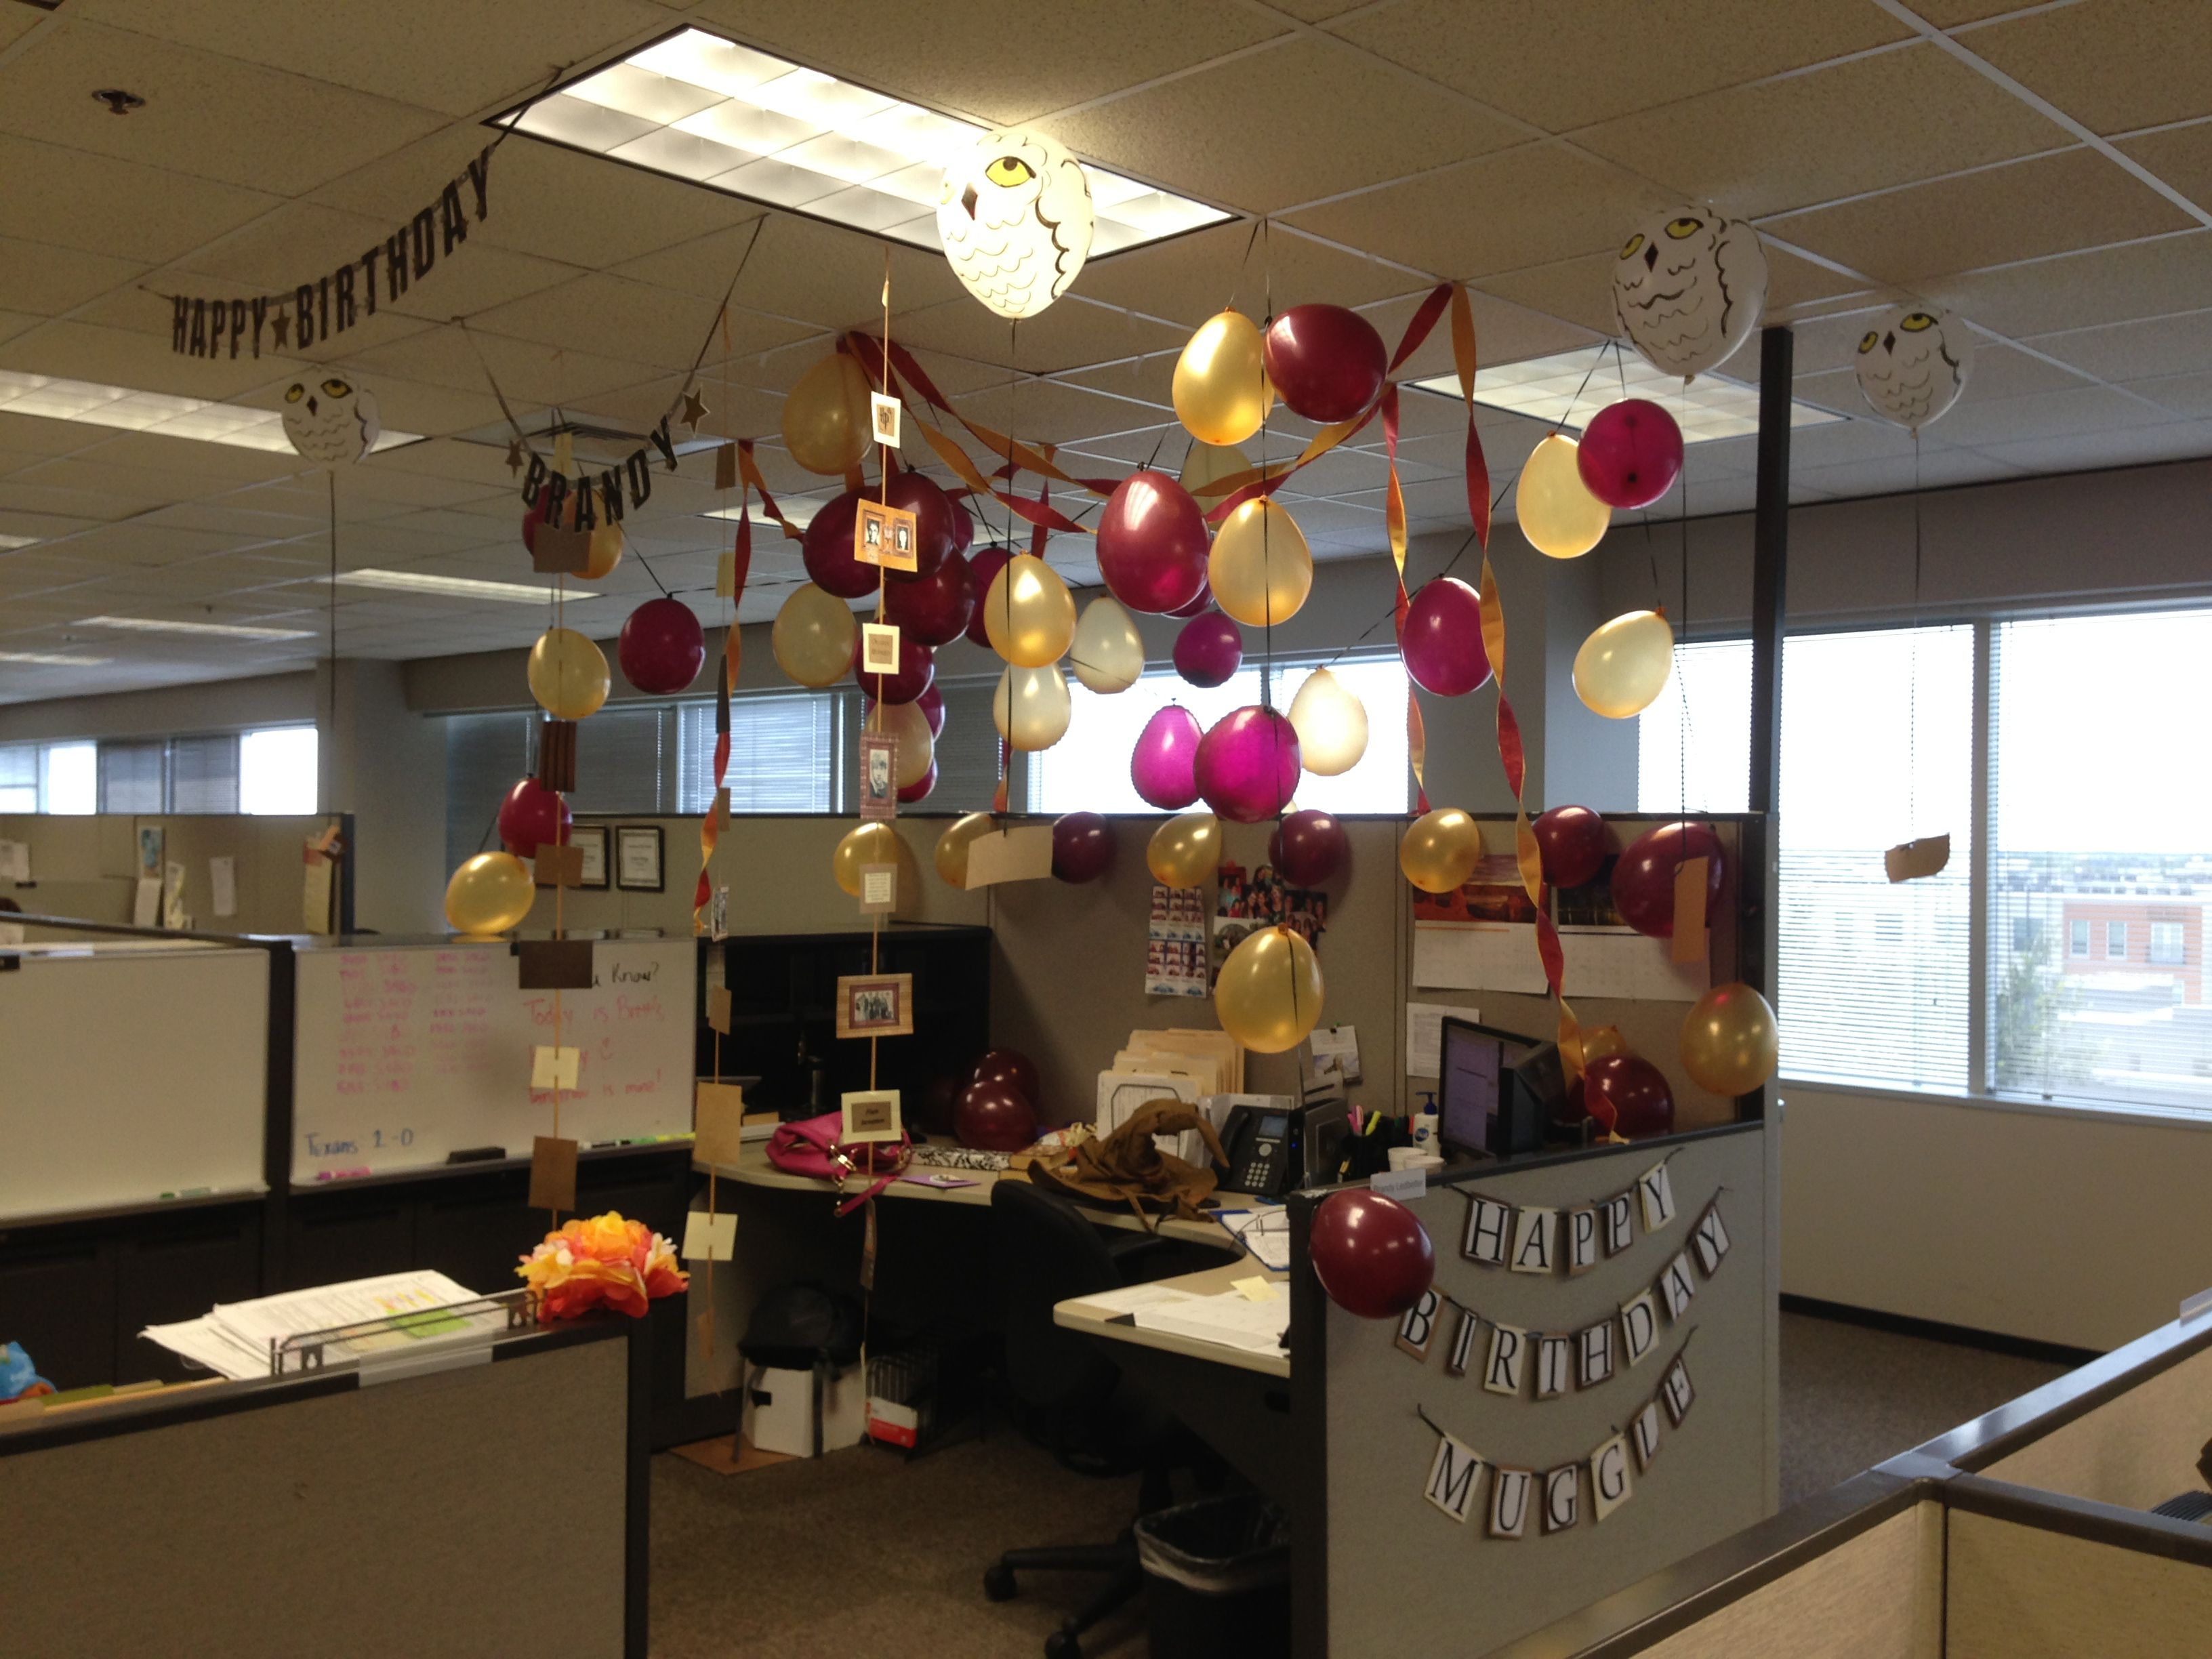 decoration of office. Harry Potter Birthday Decorations For The Office! Decoration Of Office G